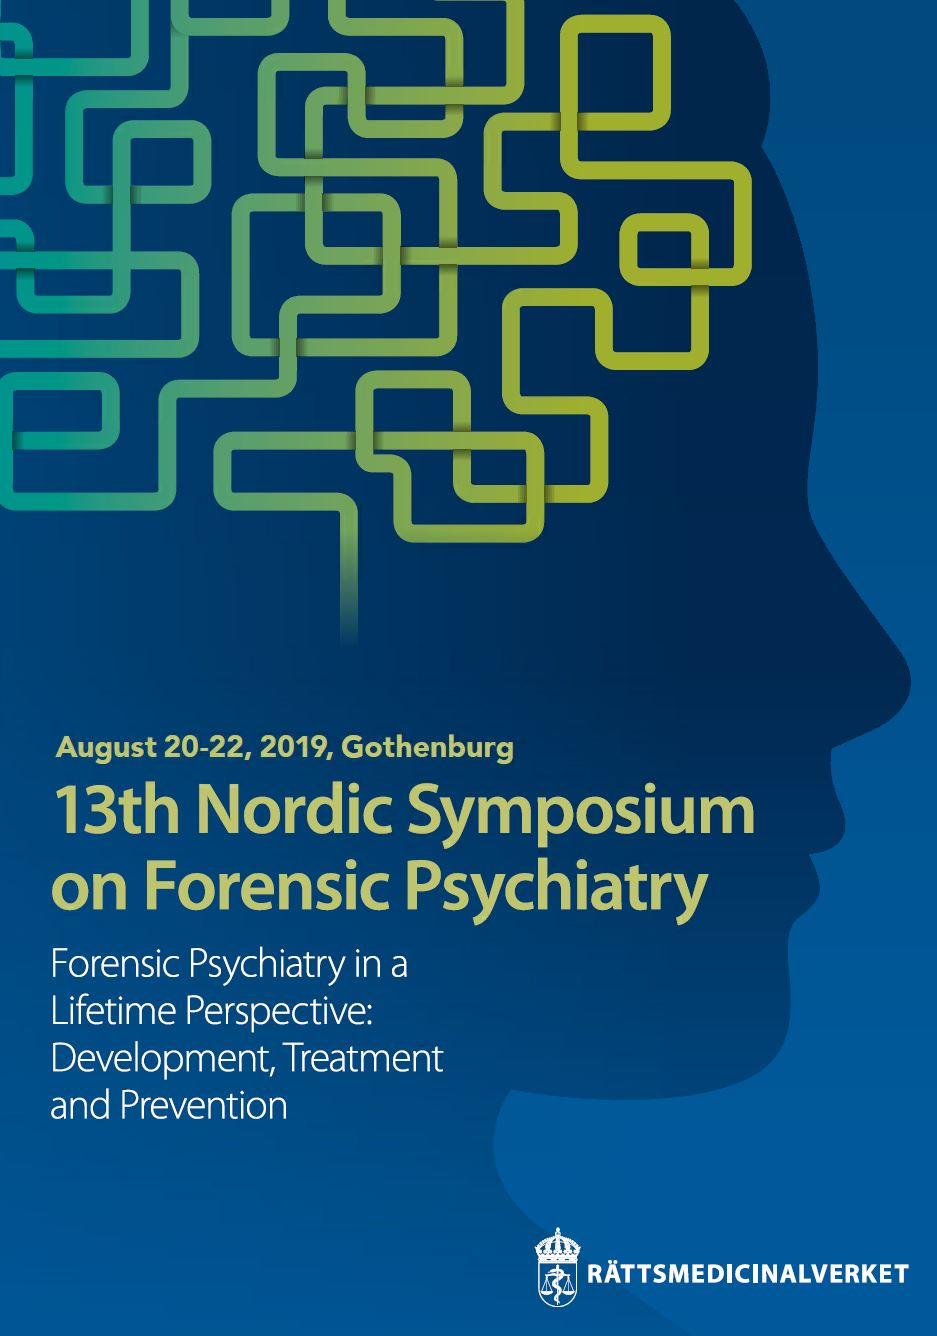 13th Symposium on Forensic Psychiatry